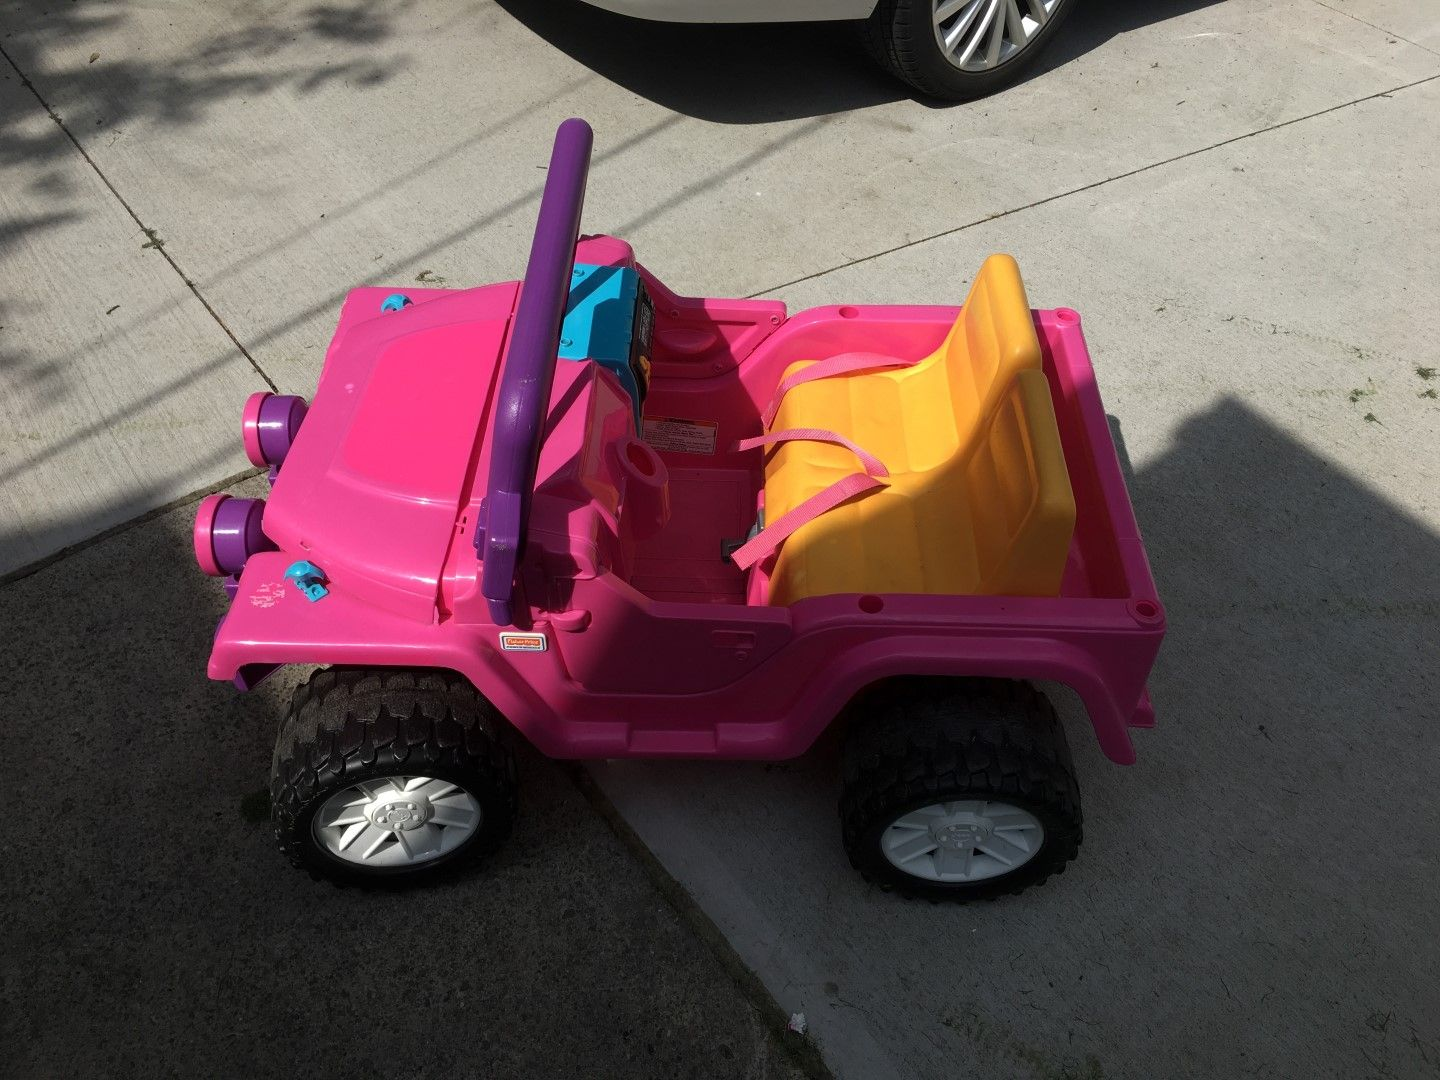 Made A Jurassic Park Power Wheels Jeep For My Son I Got Inspired By A Few Other Redditors And Decided To Make My Own Jeep Power Wheels Jeep Power Wheels Jeep